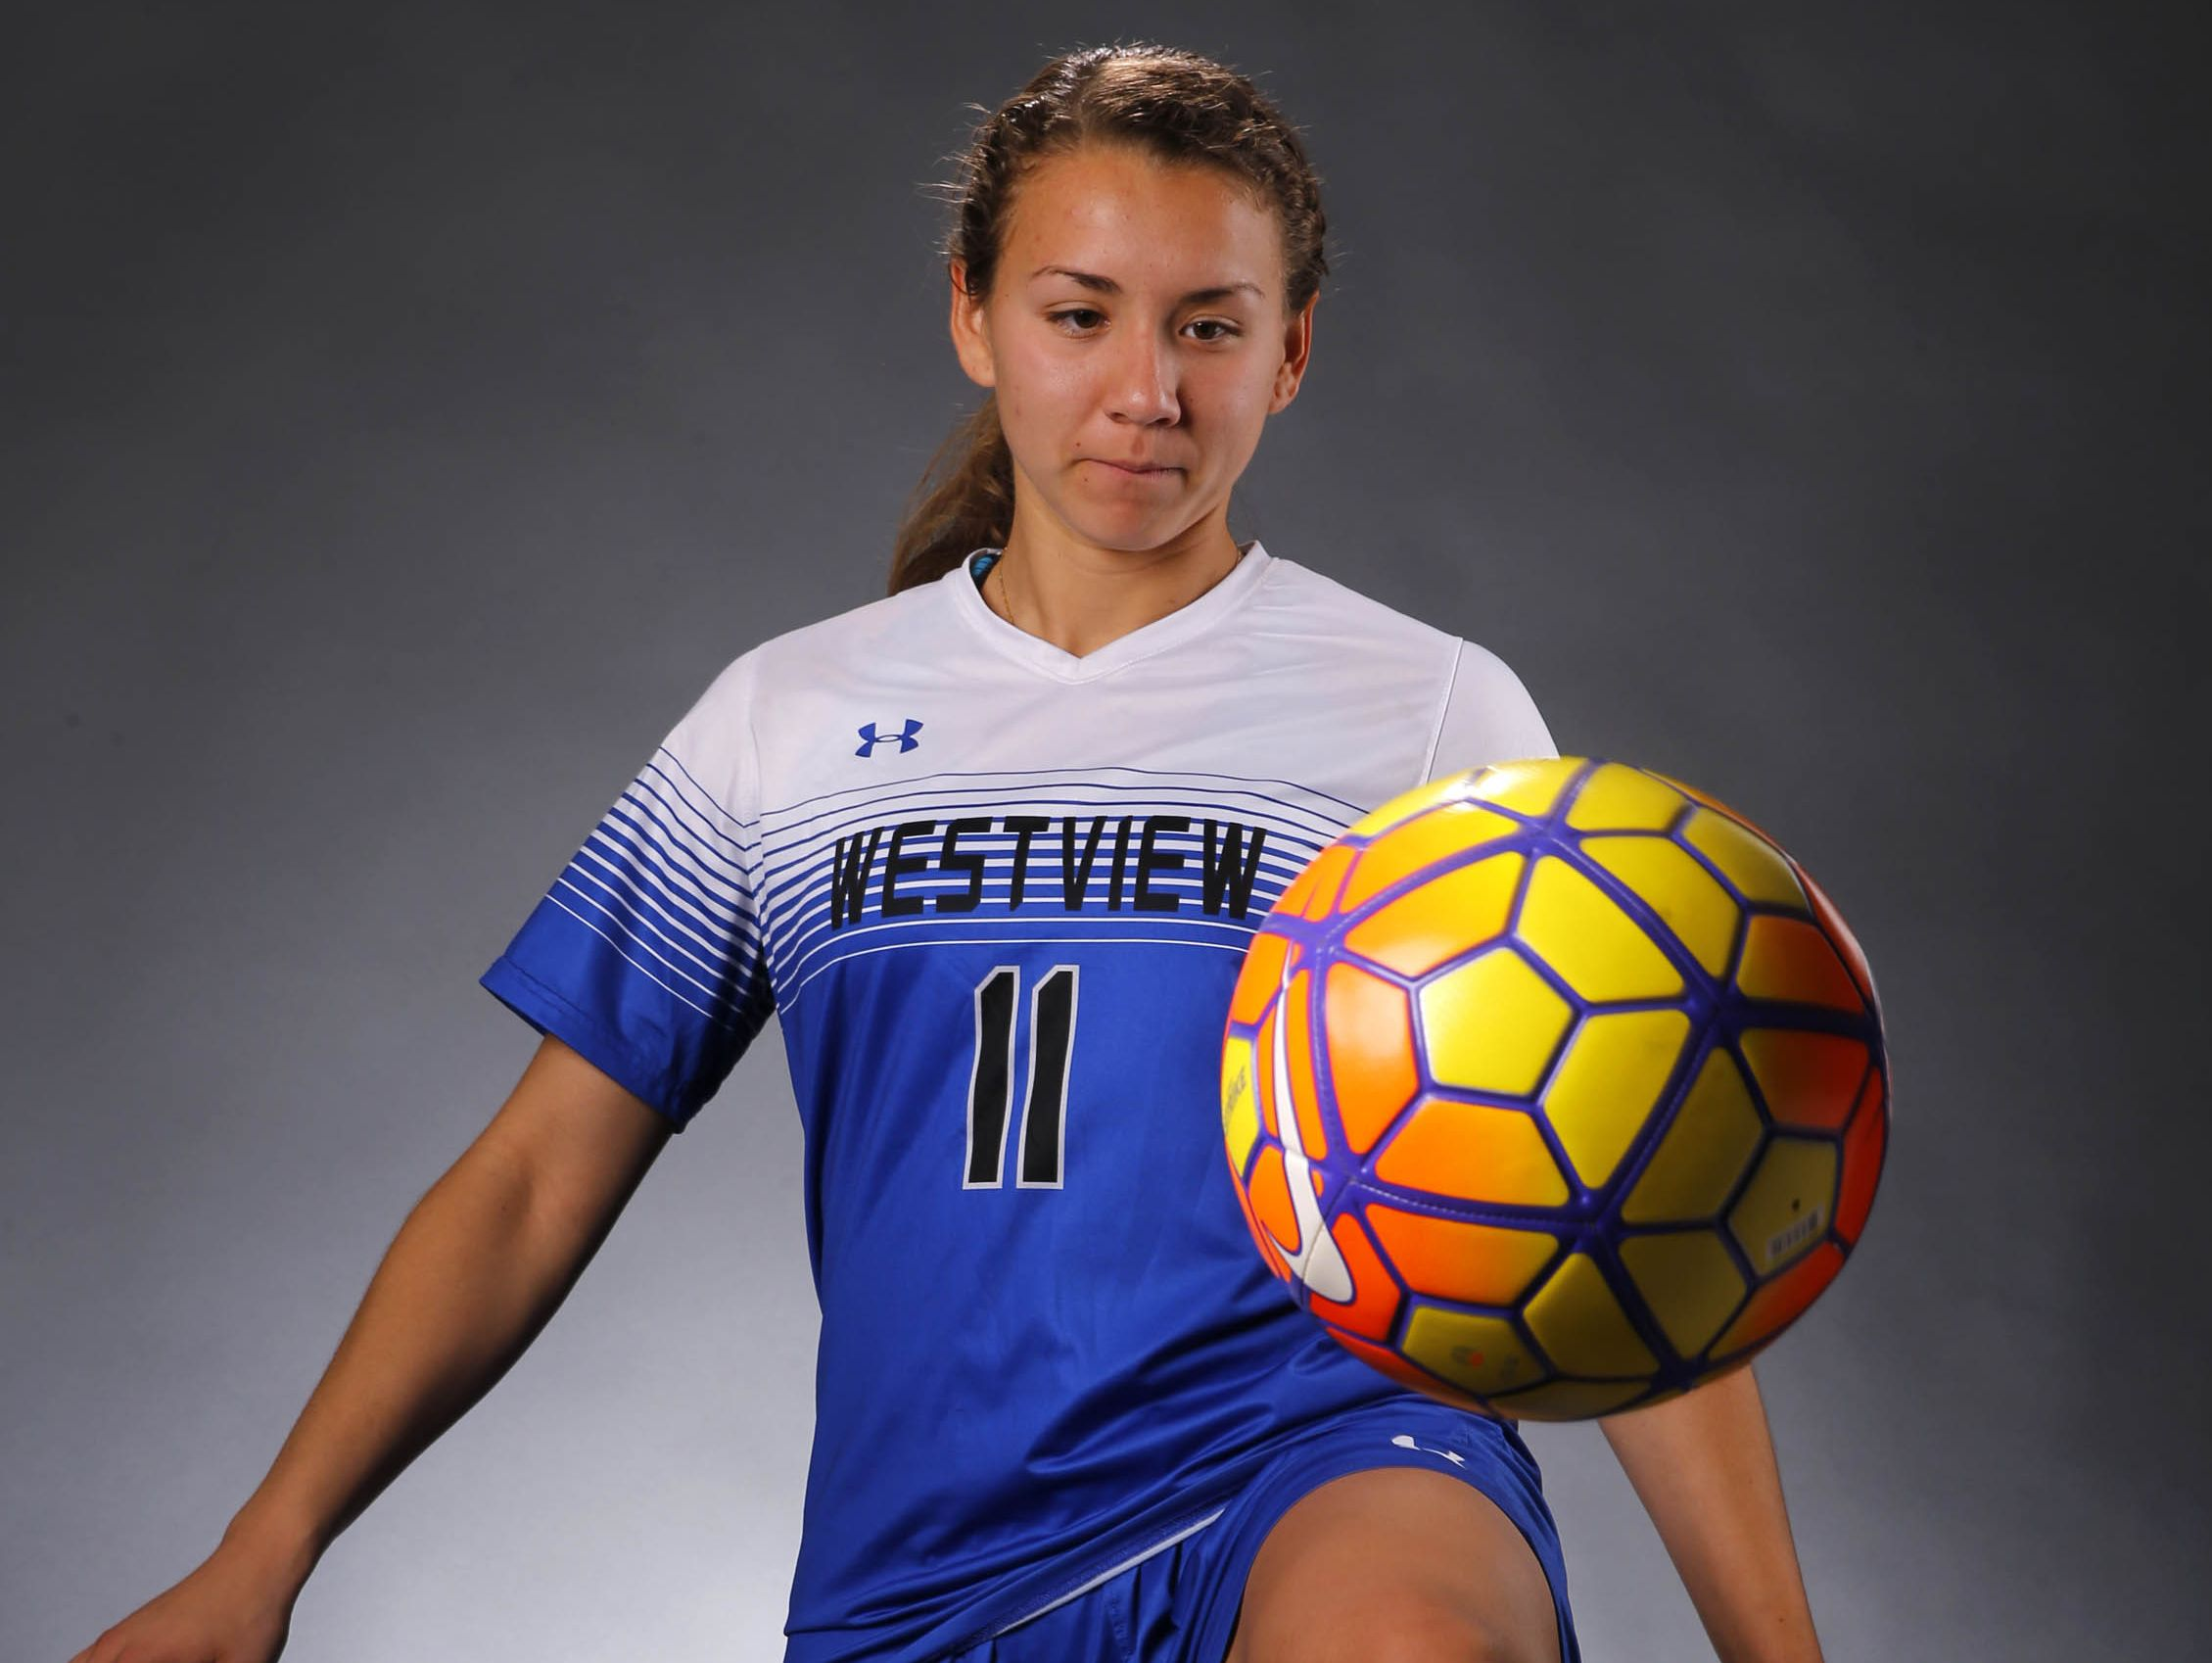 Olivia Hernandez, Avondale Westview senior soccer player, is the azcentral sports' Arizona Sports Awards Athlete of the Month runner-up, presented by La-Z-Boy Furniture Galleries.